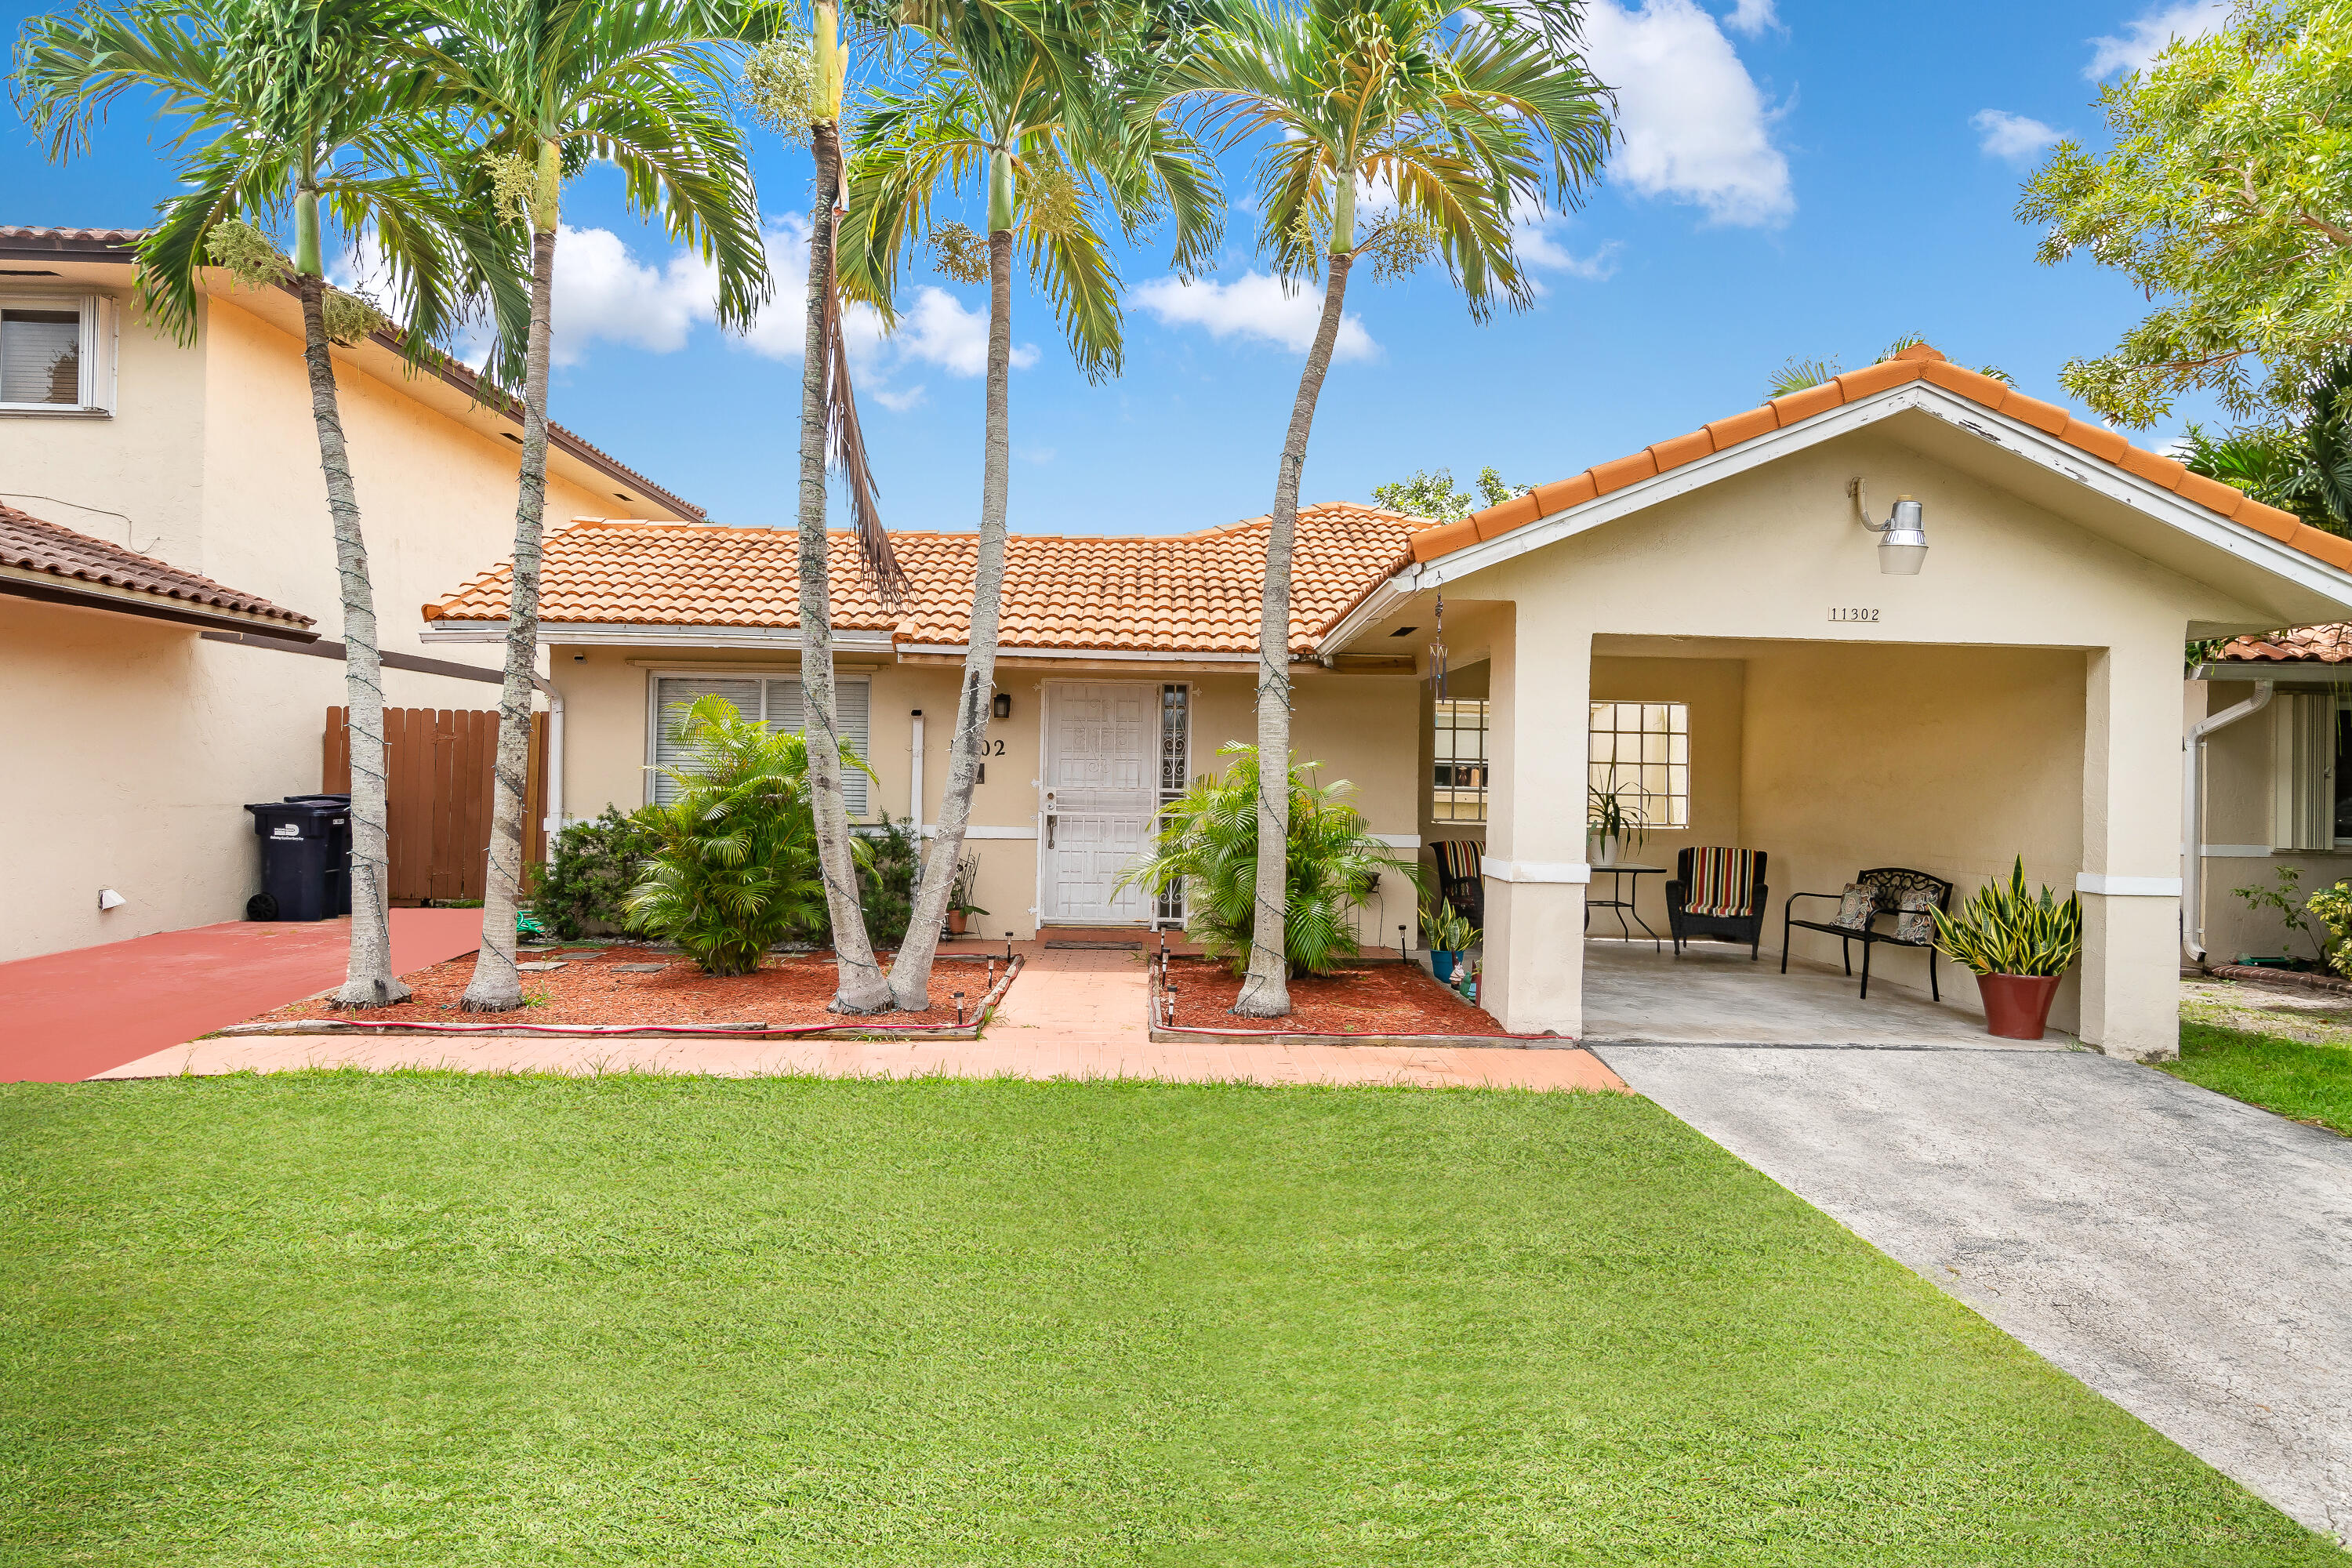 Home for sale in Sunset Mansions Miami Florida